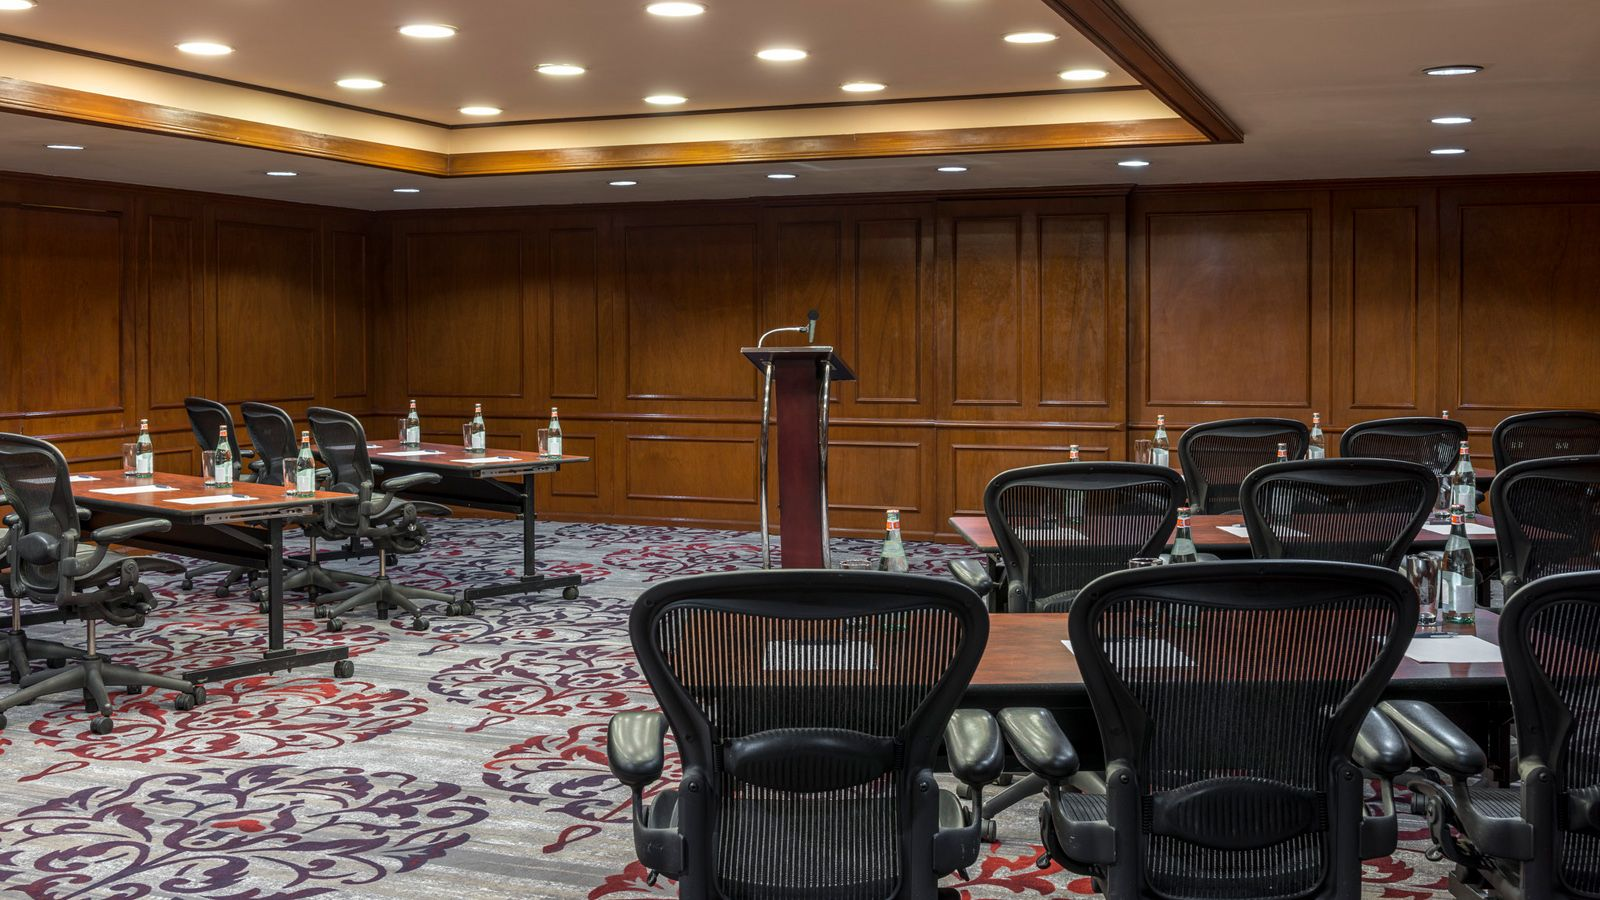 Ducal Meeting Room at Sheraton Monterrey Ambassador Hotel